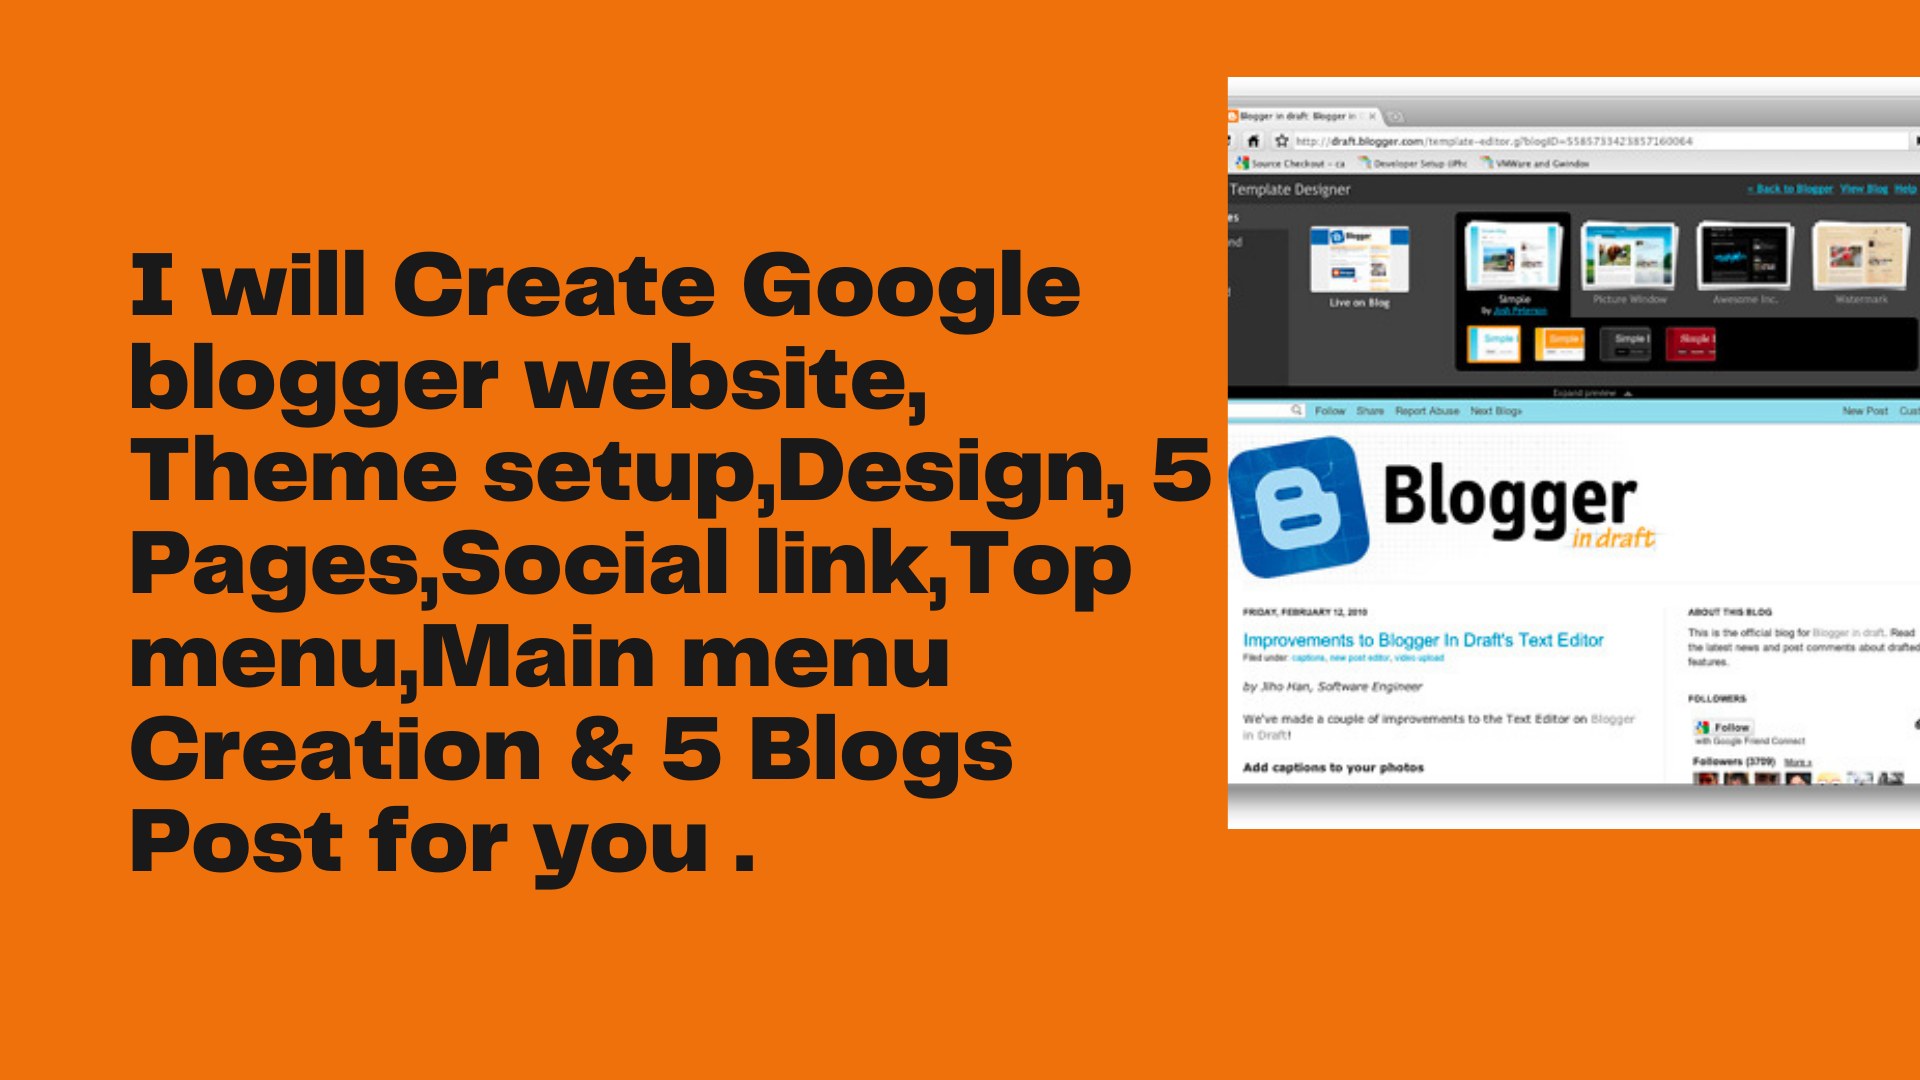 I will create a google blogger website,  theme setup,  design,  pages, social link,  manu creation & 5 bl